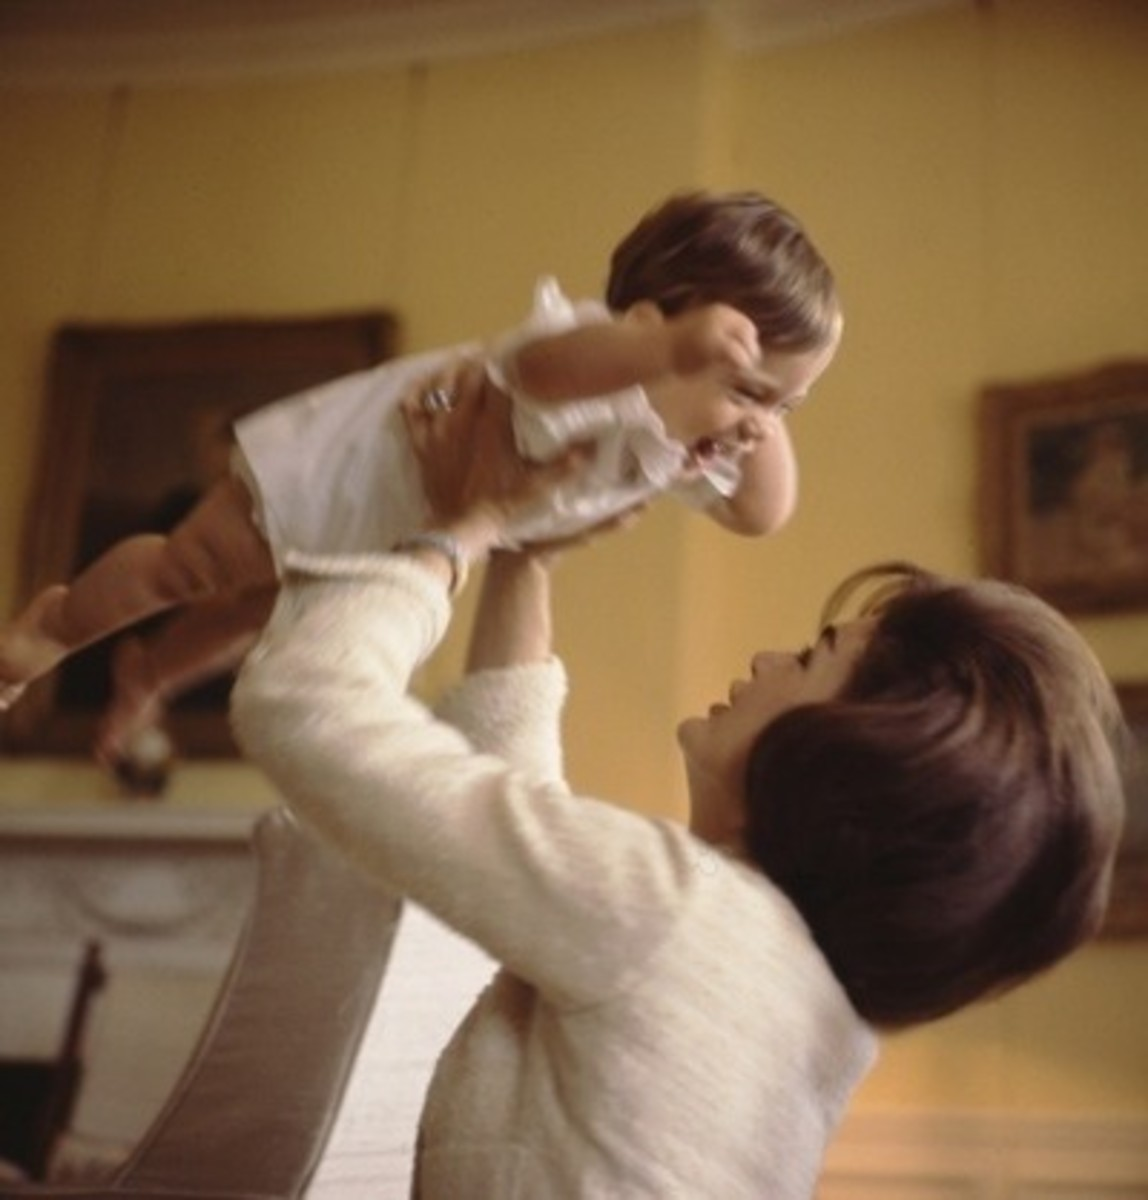 Jackie plays with baby John John